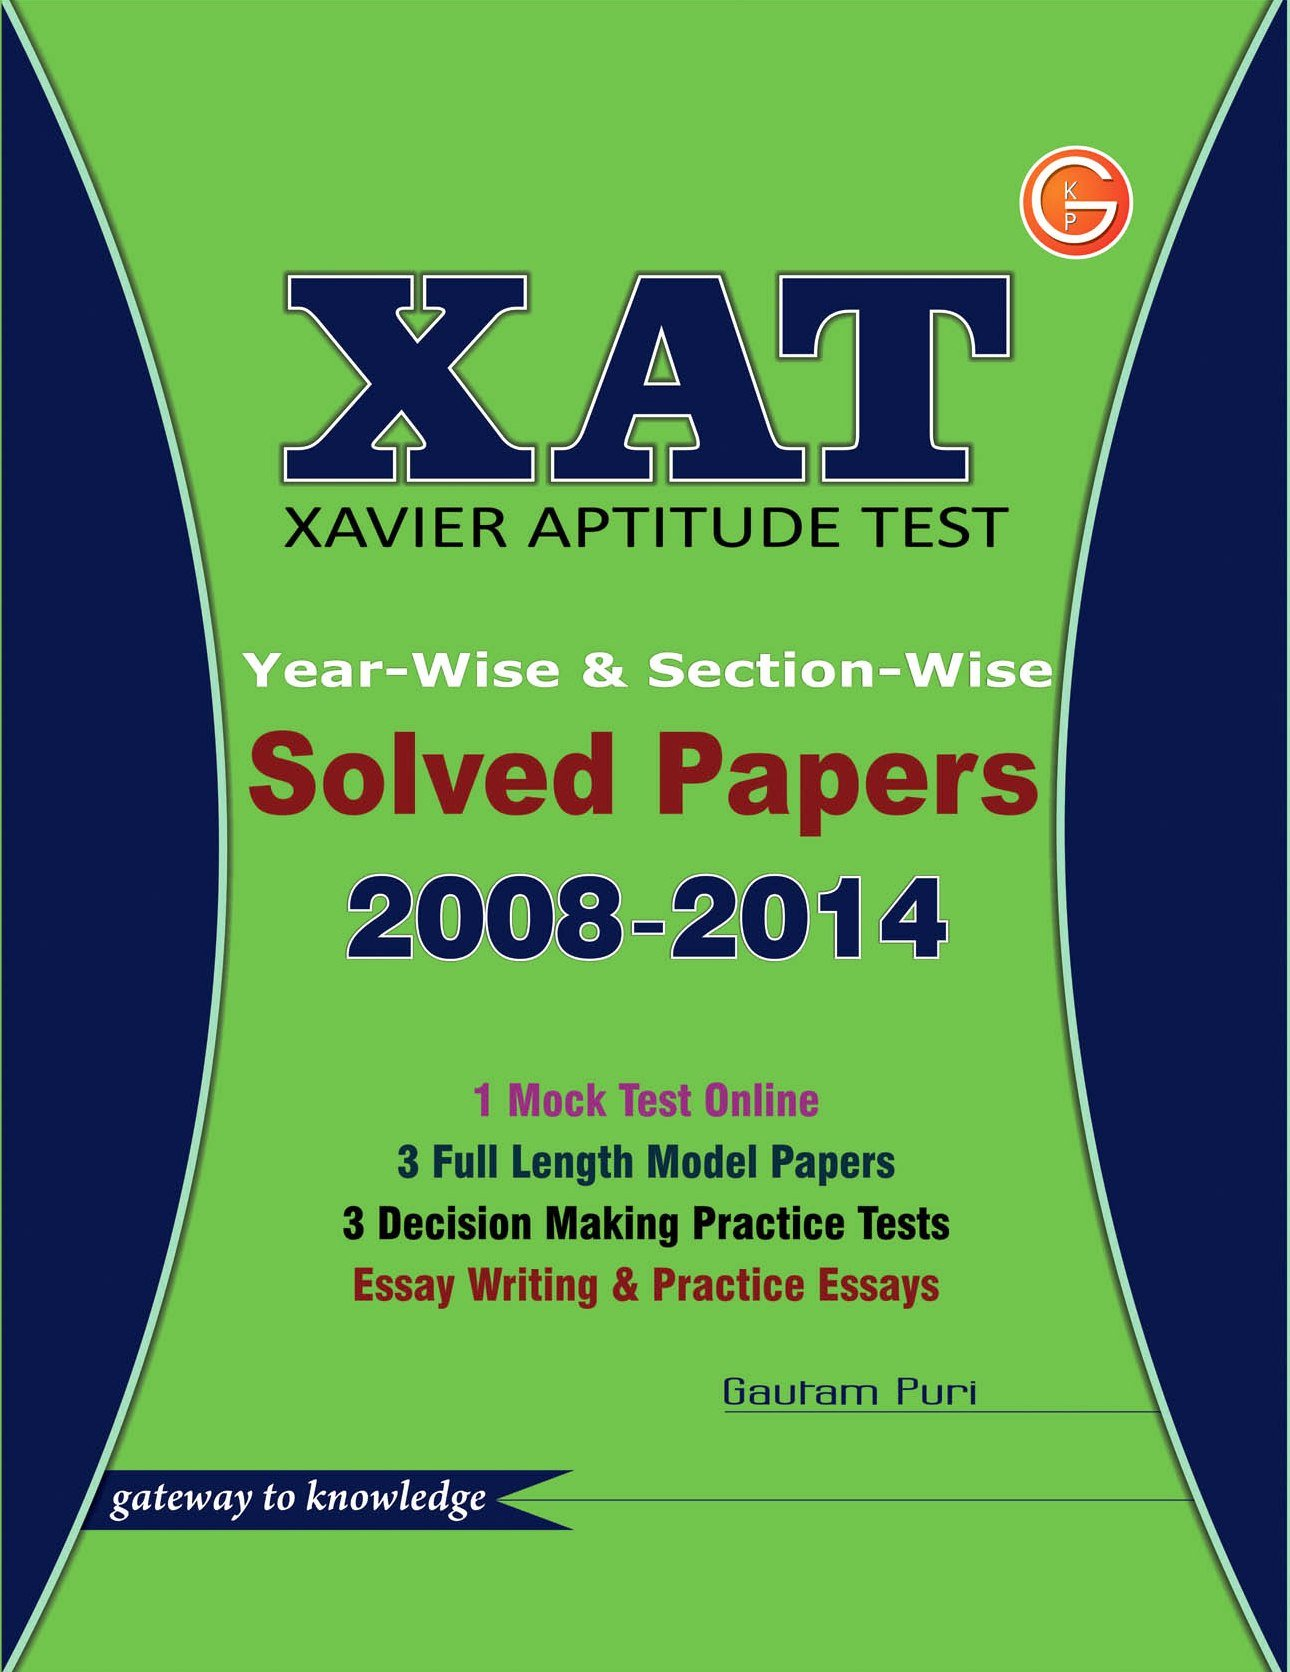 xat essay essay on safety at home application essay writing xat  buy xat solved papers gautam puri book online at low buy xat solved papers 2008 2014 sample essays